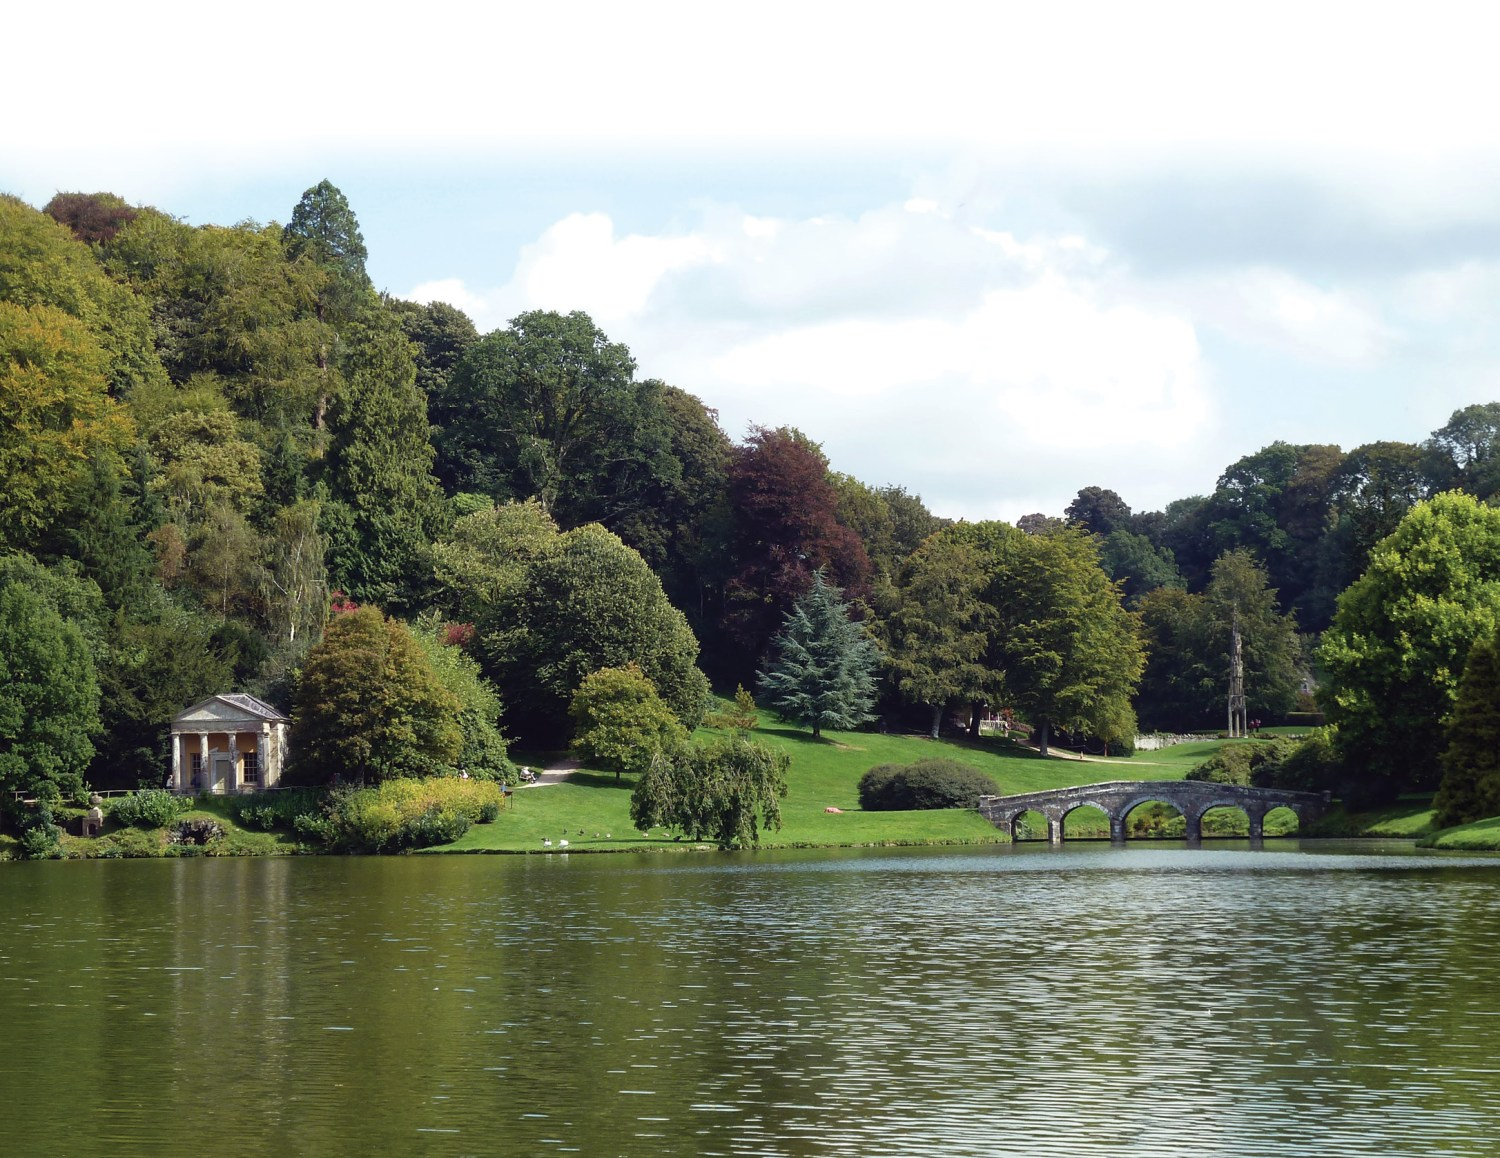 below The Temple of Flora and the Palladian Bridge at Stourhead, illustrating the influence of Italy and the Grand Tour and of the idealised landscapes of paintings by Claude Lorrain and his followers on the design of lakes in the 18th century.